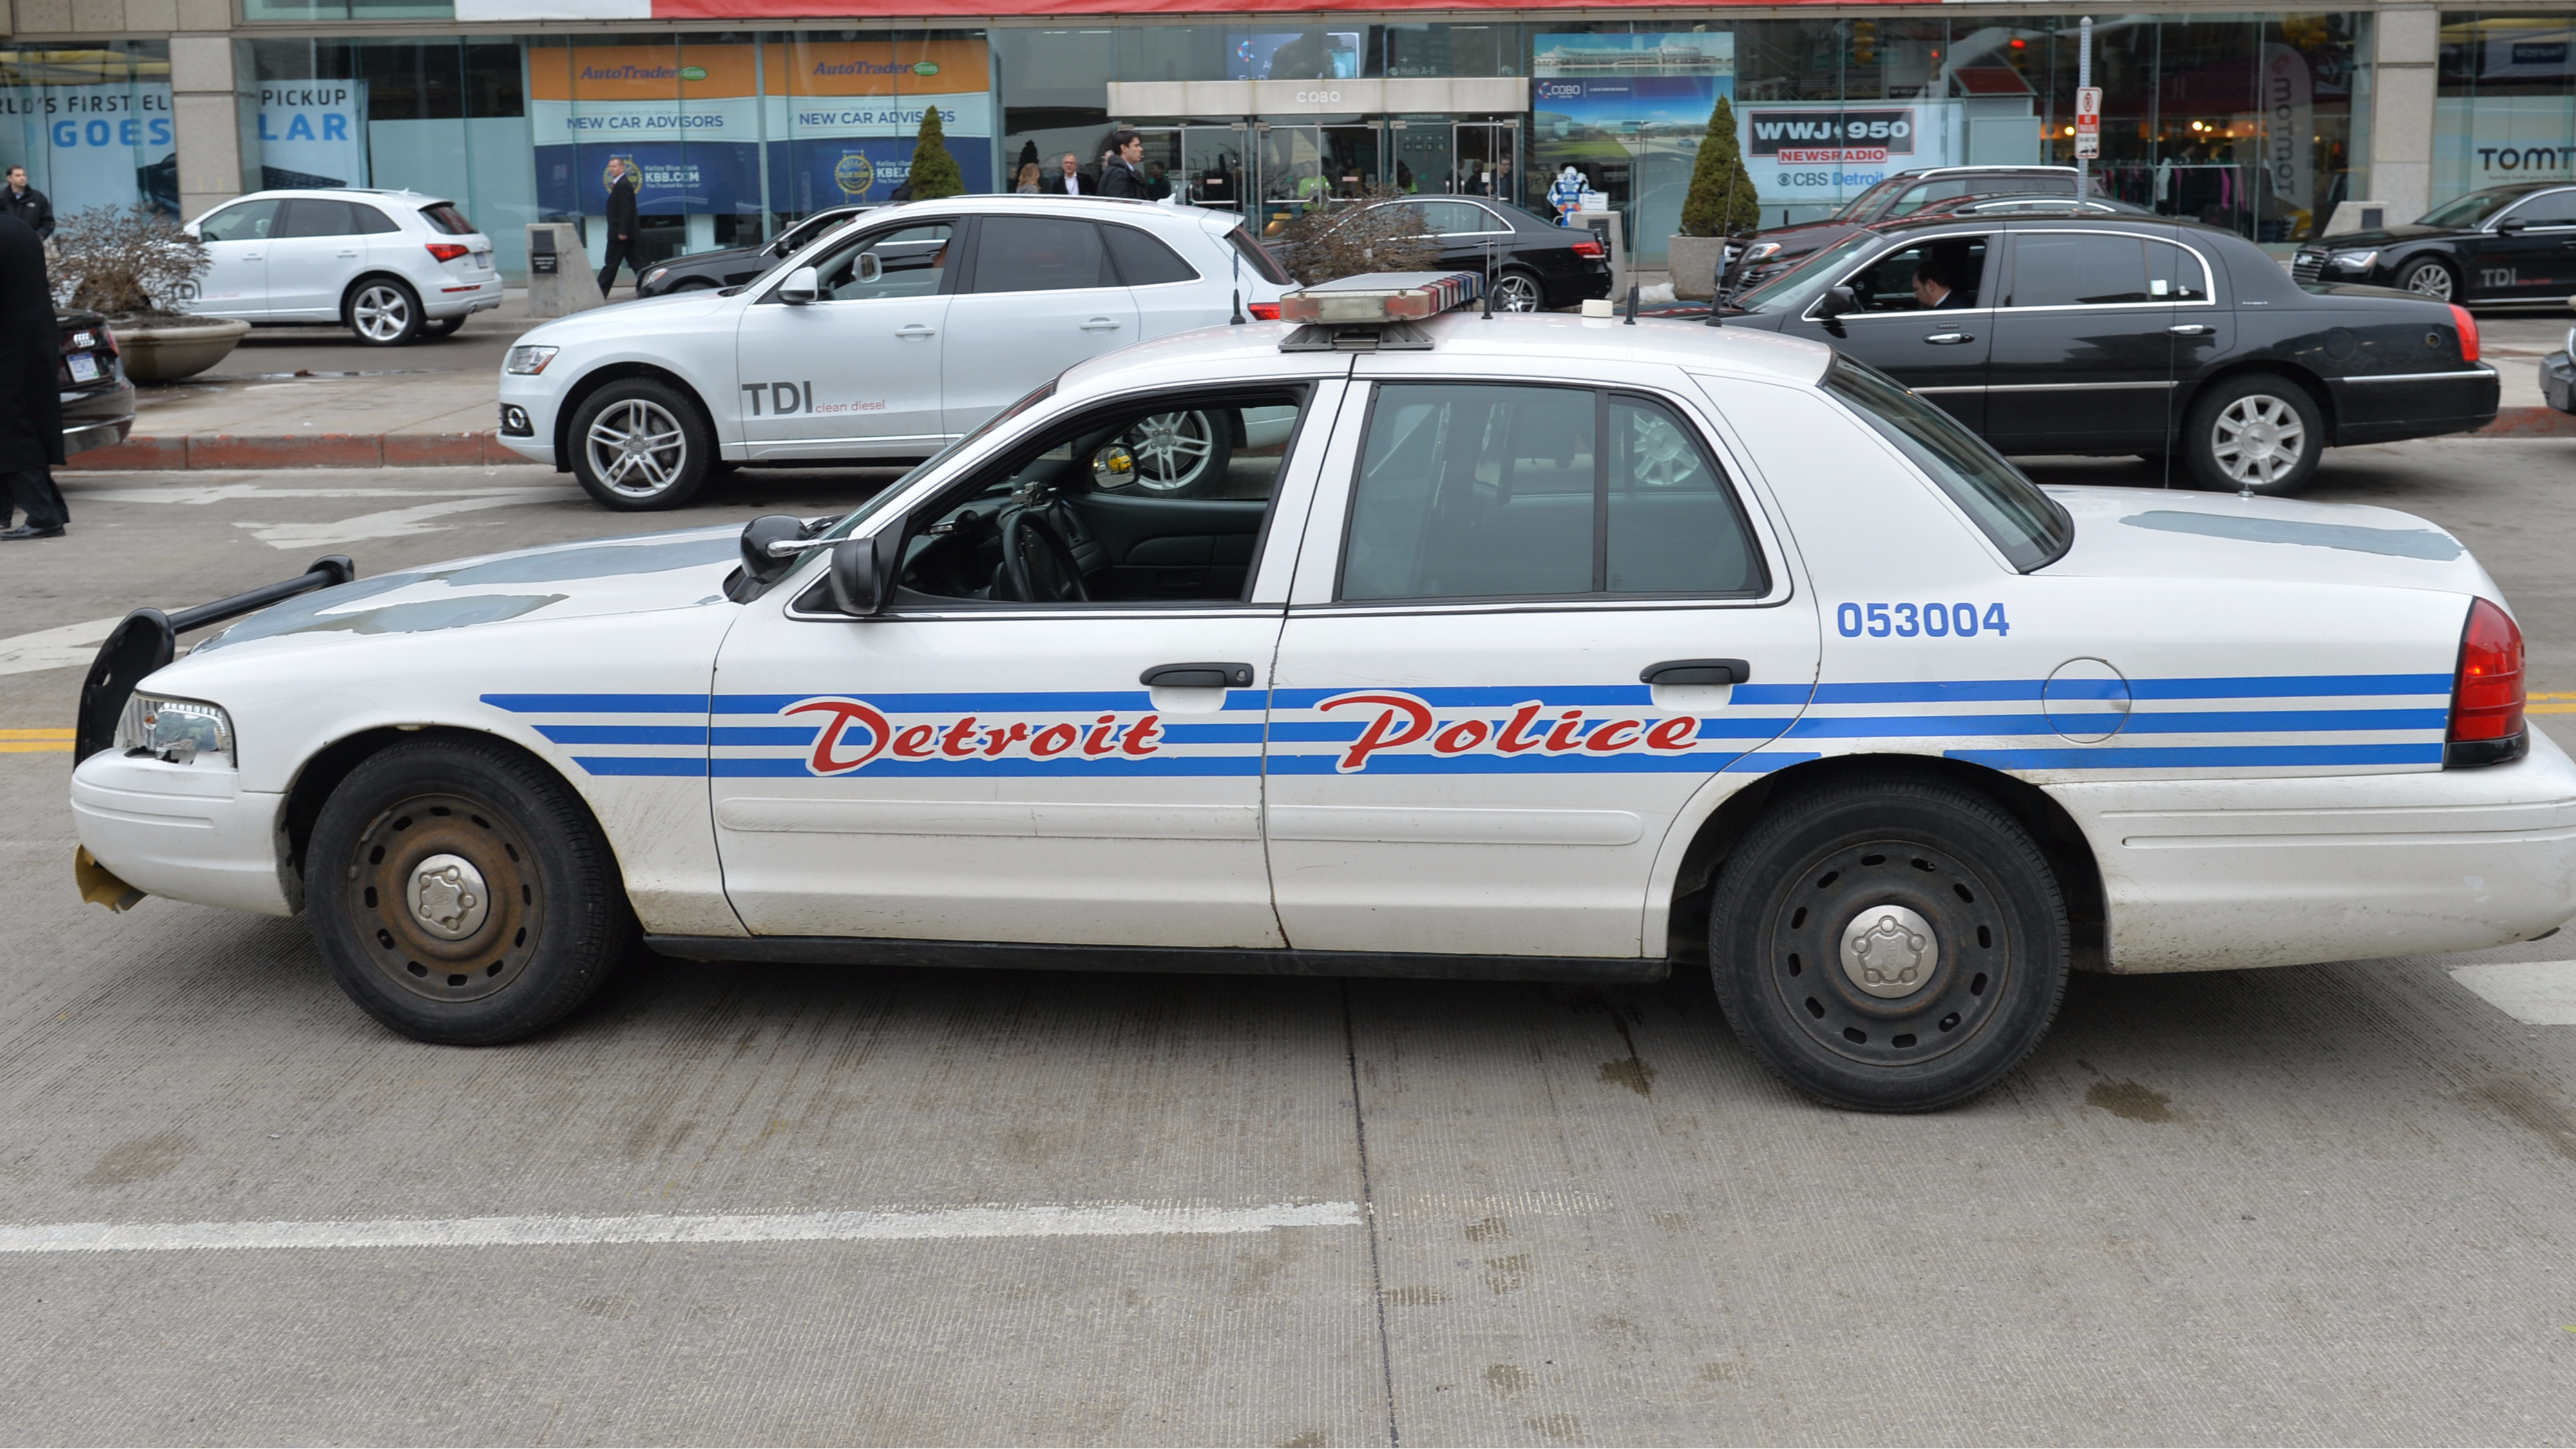 The Police Fought Each Other In Failed Undercover Op In Detroit